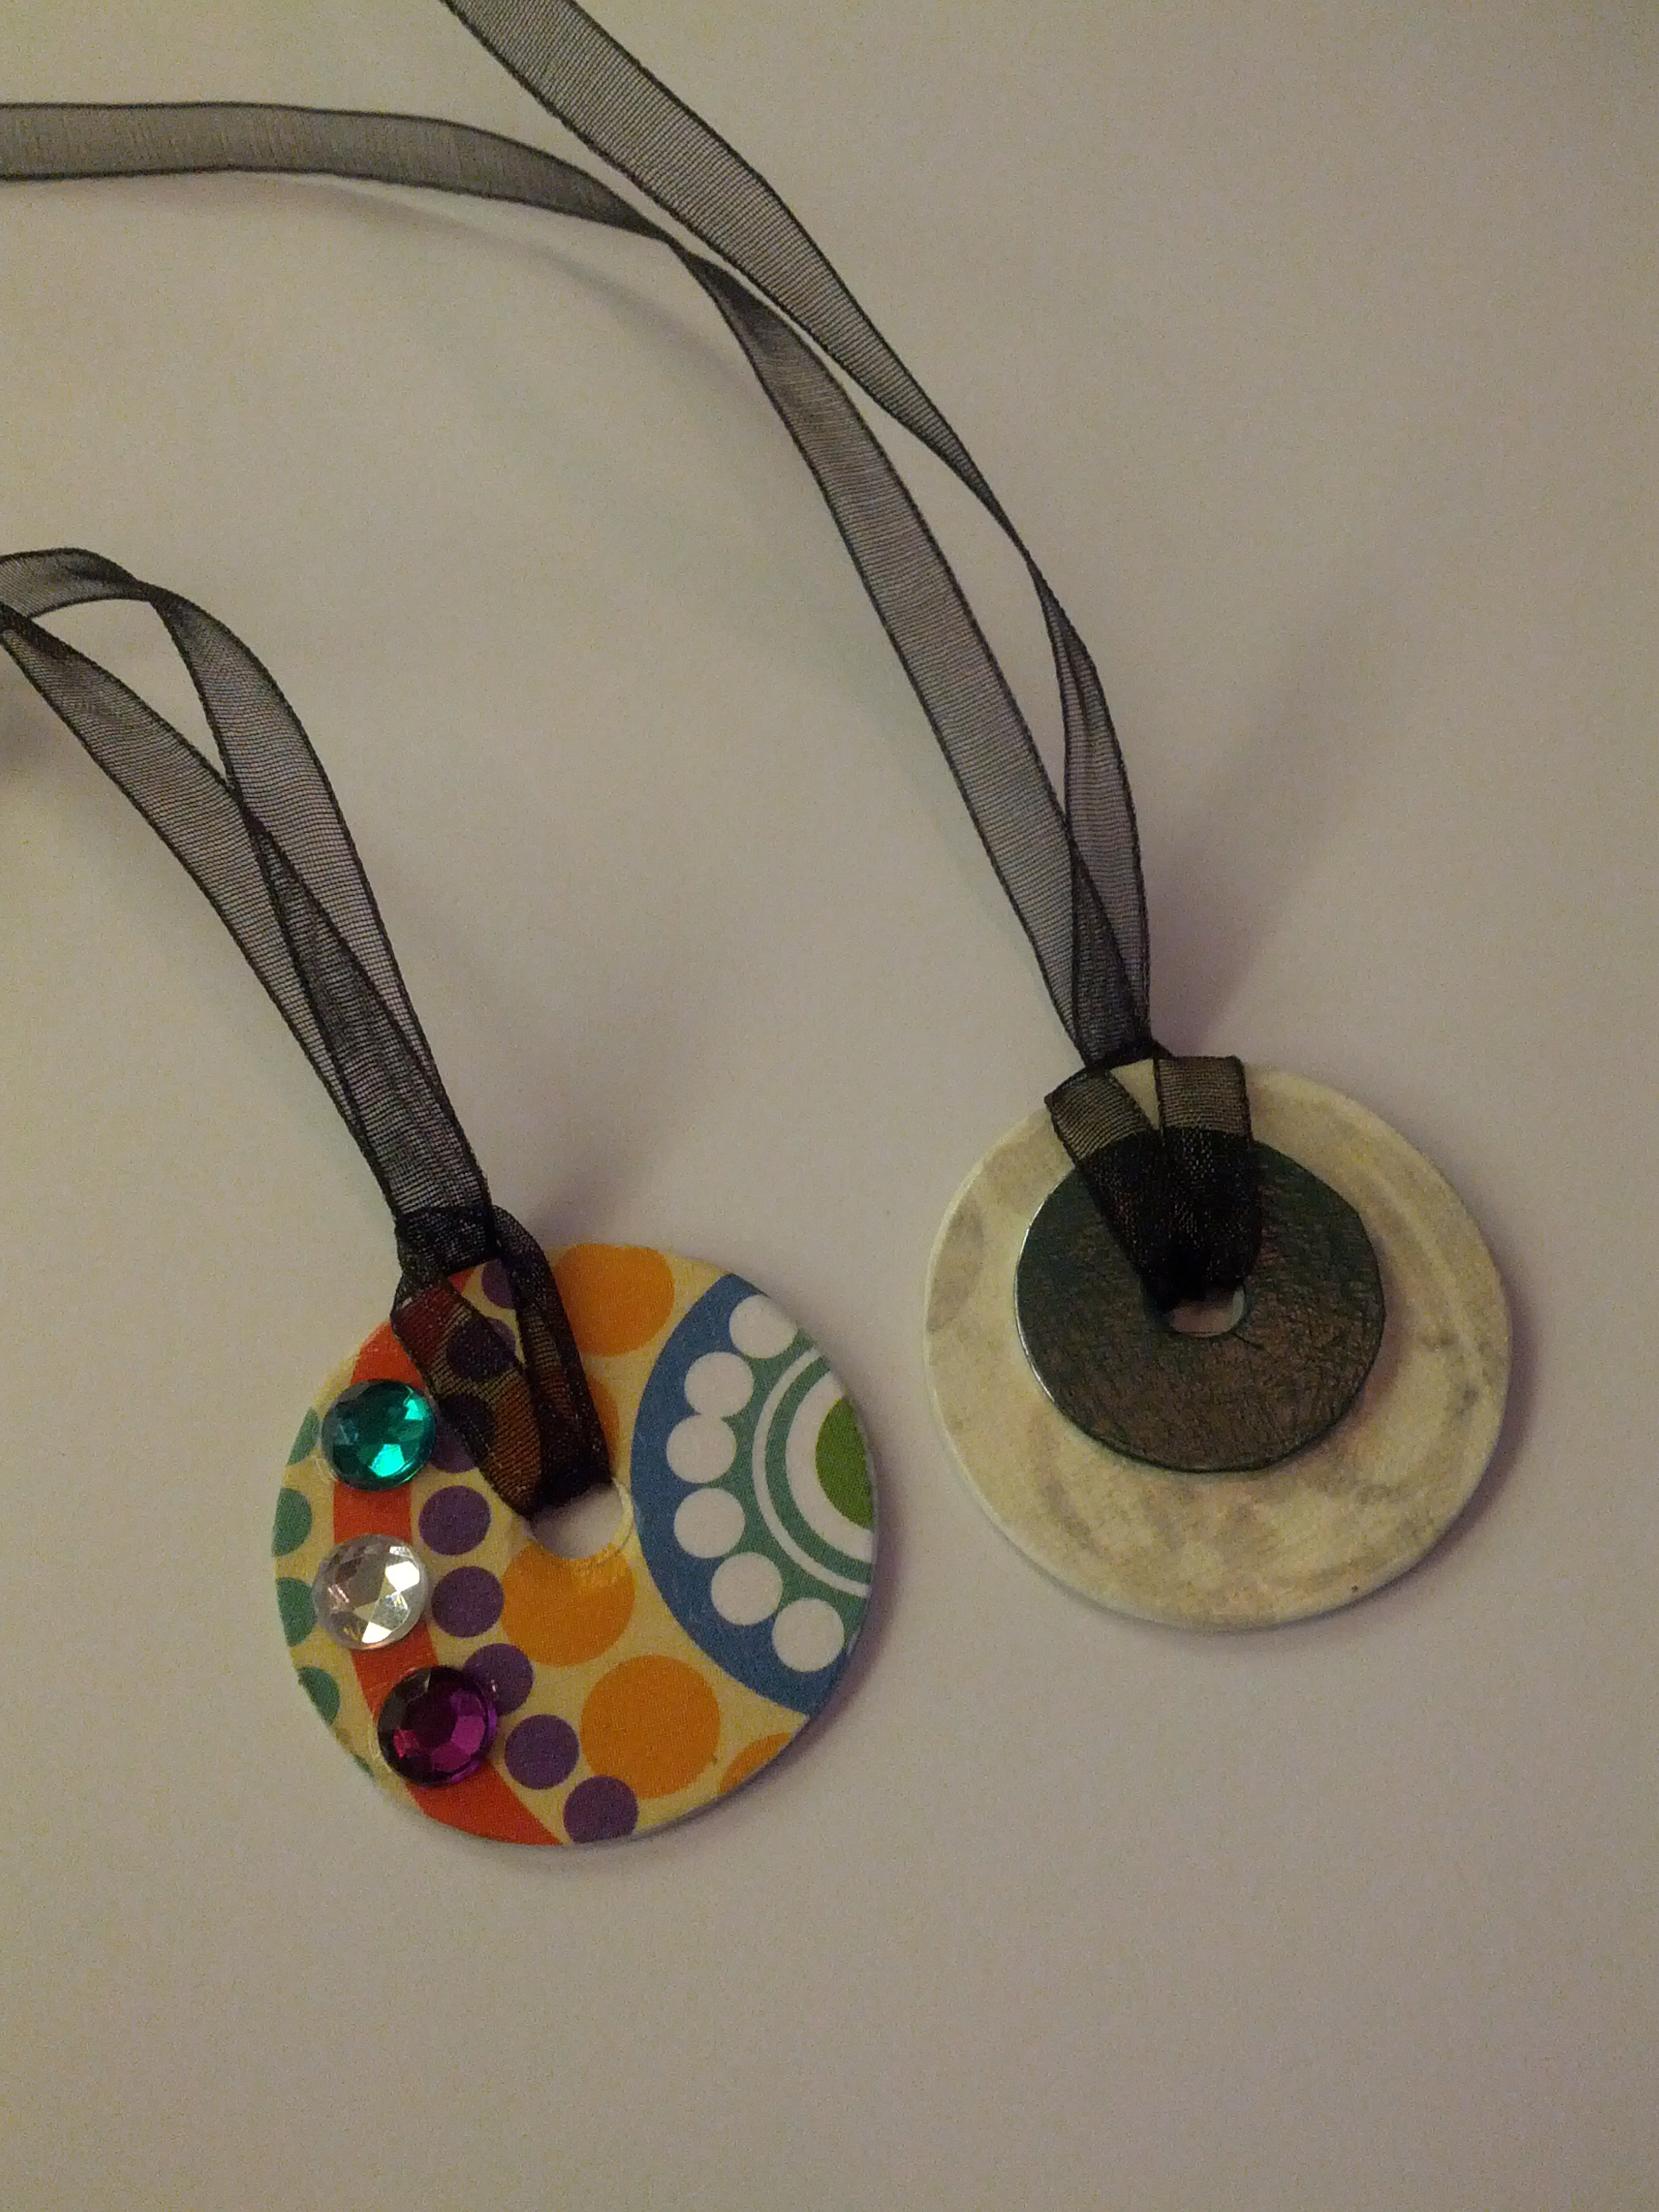 washer necklaces frabjus and the screwy carpenter